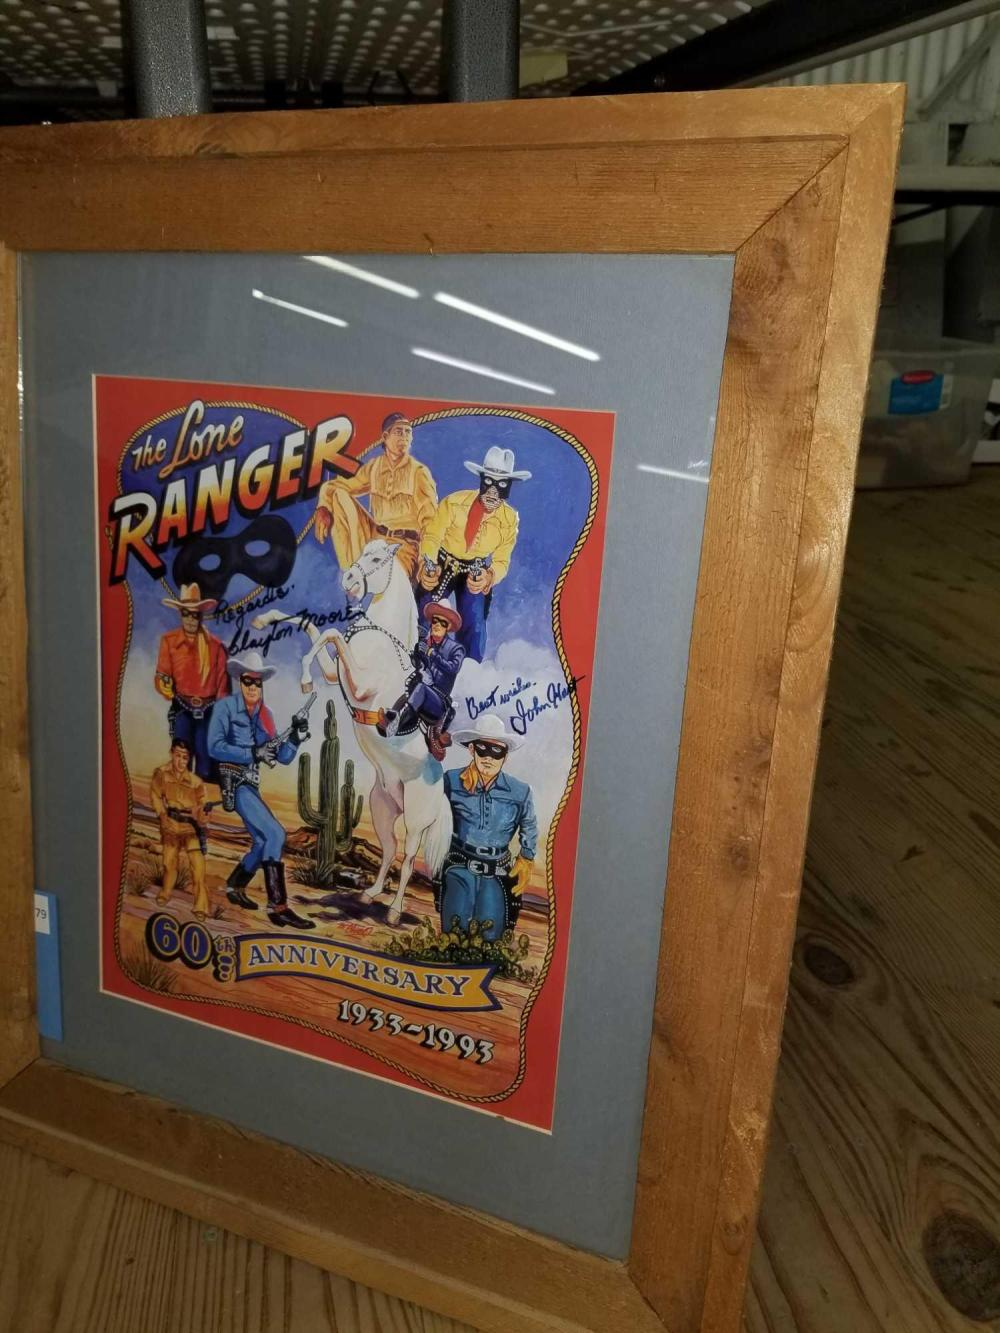 THE LONE RANGER 60TH ANNIVERSARY SIGNED EMBOSSED TIN SIGN